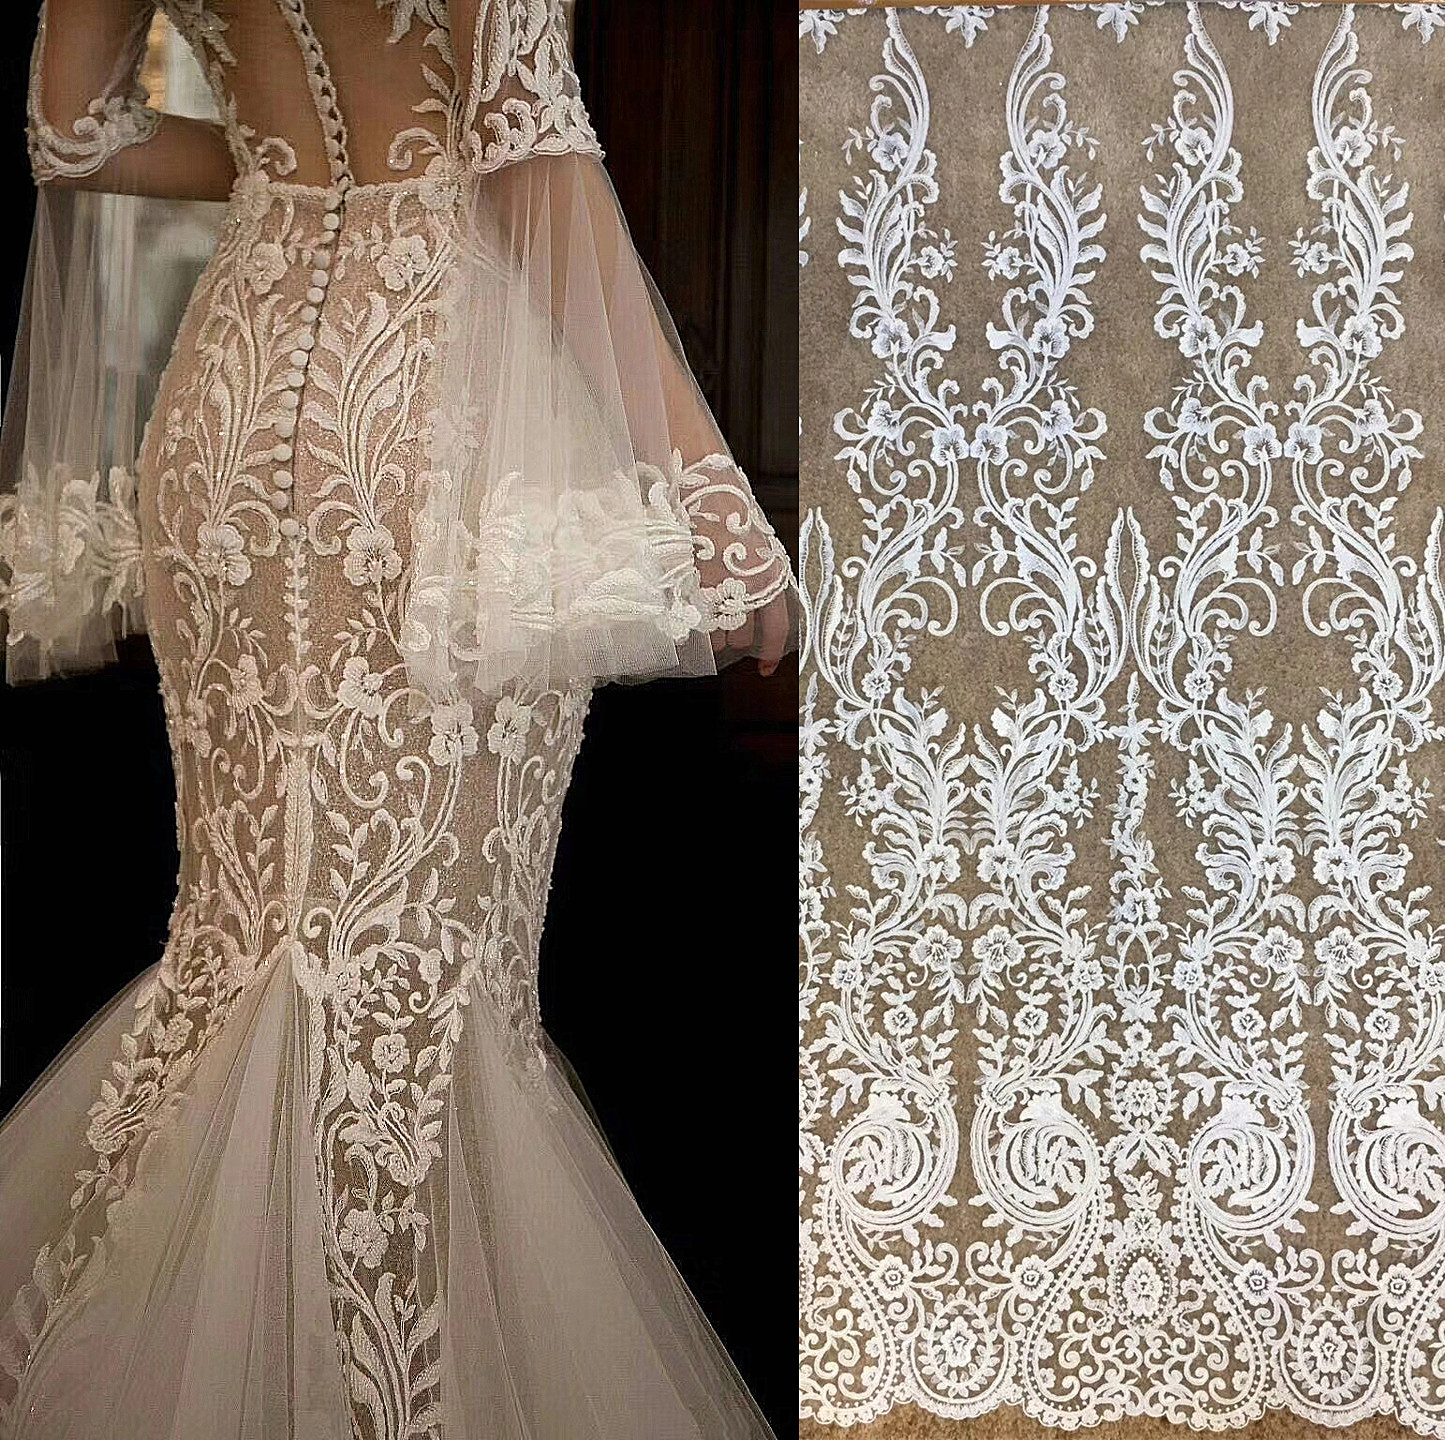 Free Shipping Imports White Sequins Embroidered Mesh Lace Fabric,  Lace Wedding Dress Fashion Wedding Decoration Fabric RS1110Fabric   -